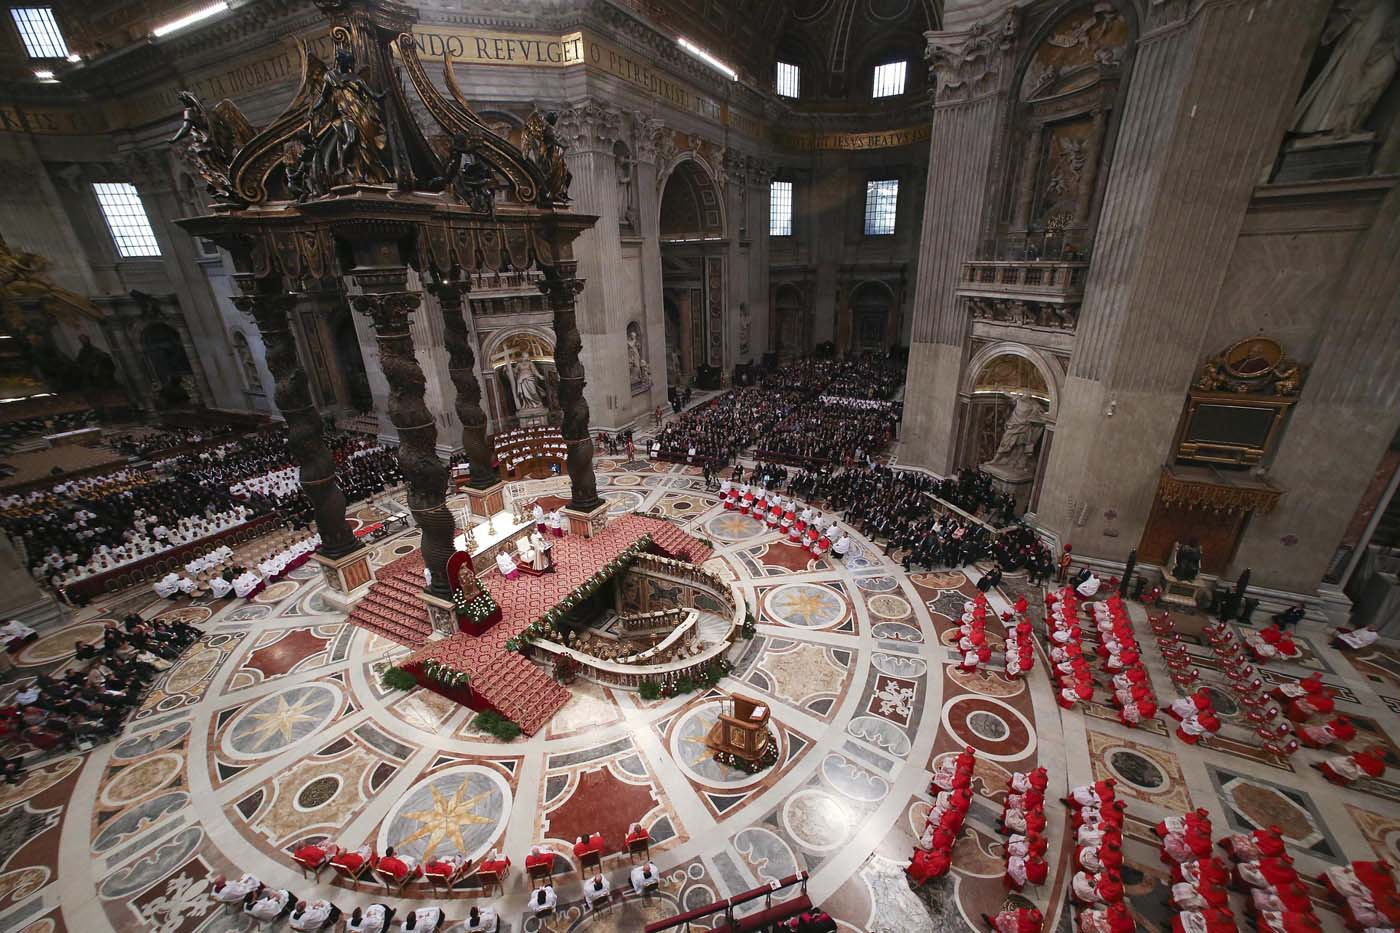 ALT109. Vatican City (Vatican City State (holy See)), 19/11/2016.- Pope Francis (C) speaks during the Consistory ceremony at the St. Peter's Basilica in Vatican, 19 November 2016. Pope Francis has named 17 new cardinals, 13 of them under age 80 and thus eligible to vote in a conclave to elect his successor. (Papa) EFE/EPA/STEFANO RELLANDINI/POOL